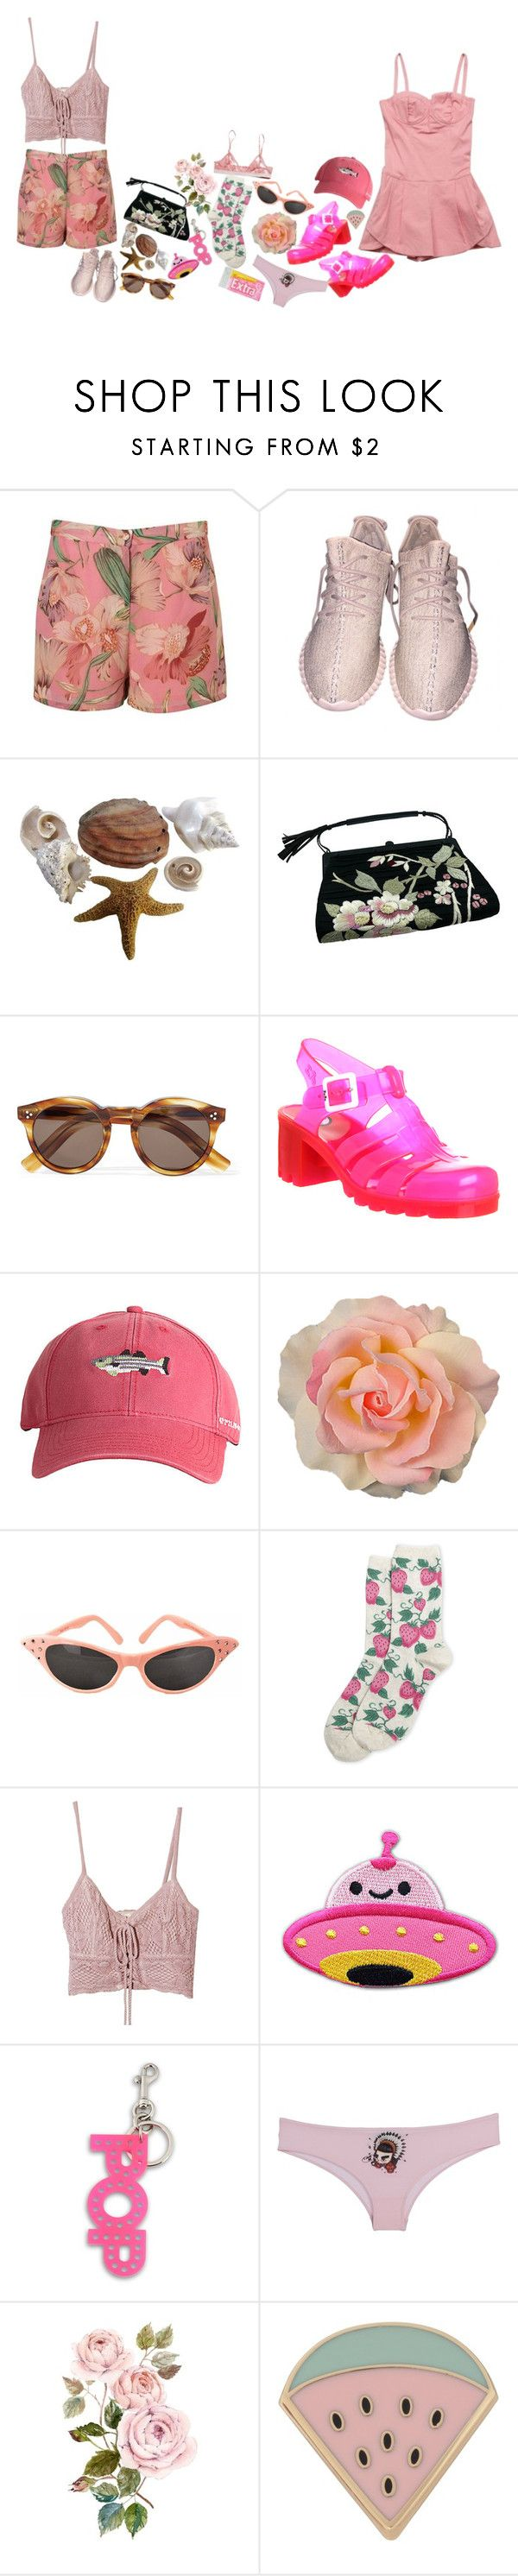 """""""But I can't swim"""" by spiced-pistachio ❤ liked on Polyvore featuring Tom Ford, Illesteva, Baby Phat, JuJu, Harding-Lane, HOT SOX, Jens Pirate Booty, STELLA McCARTNEY, Dsquared2 and Charlotte Ronson"""